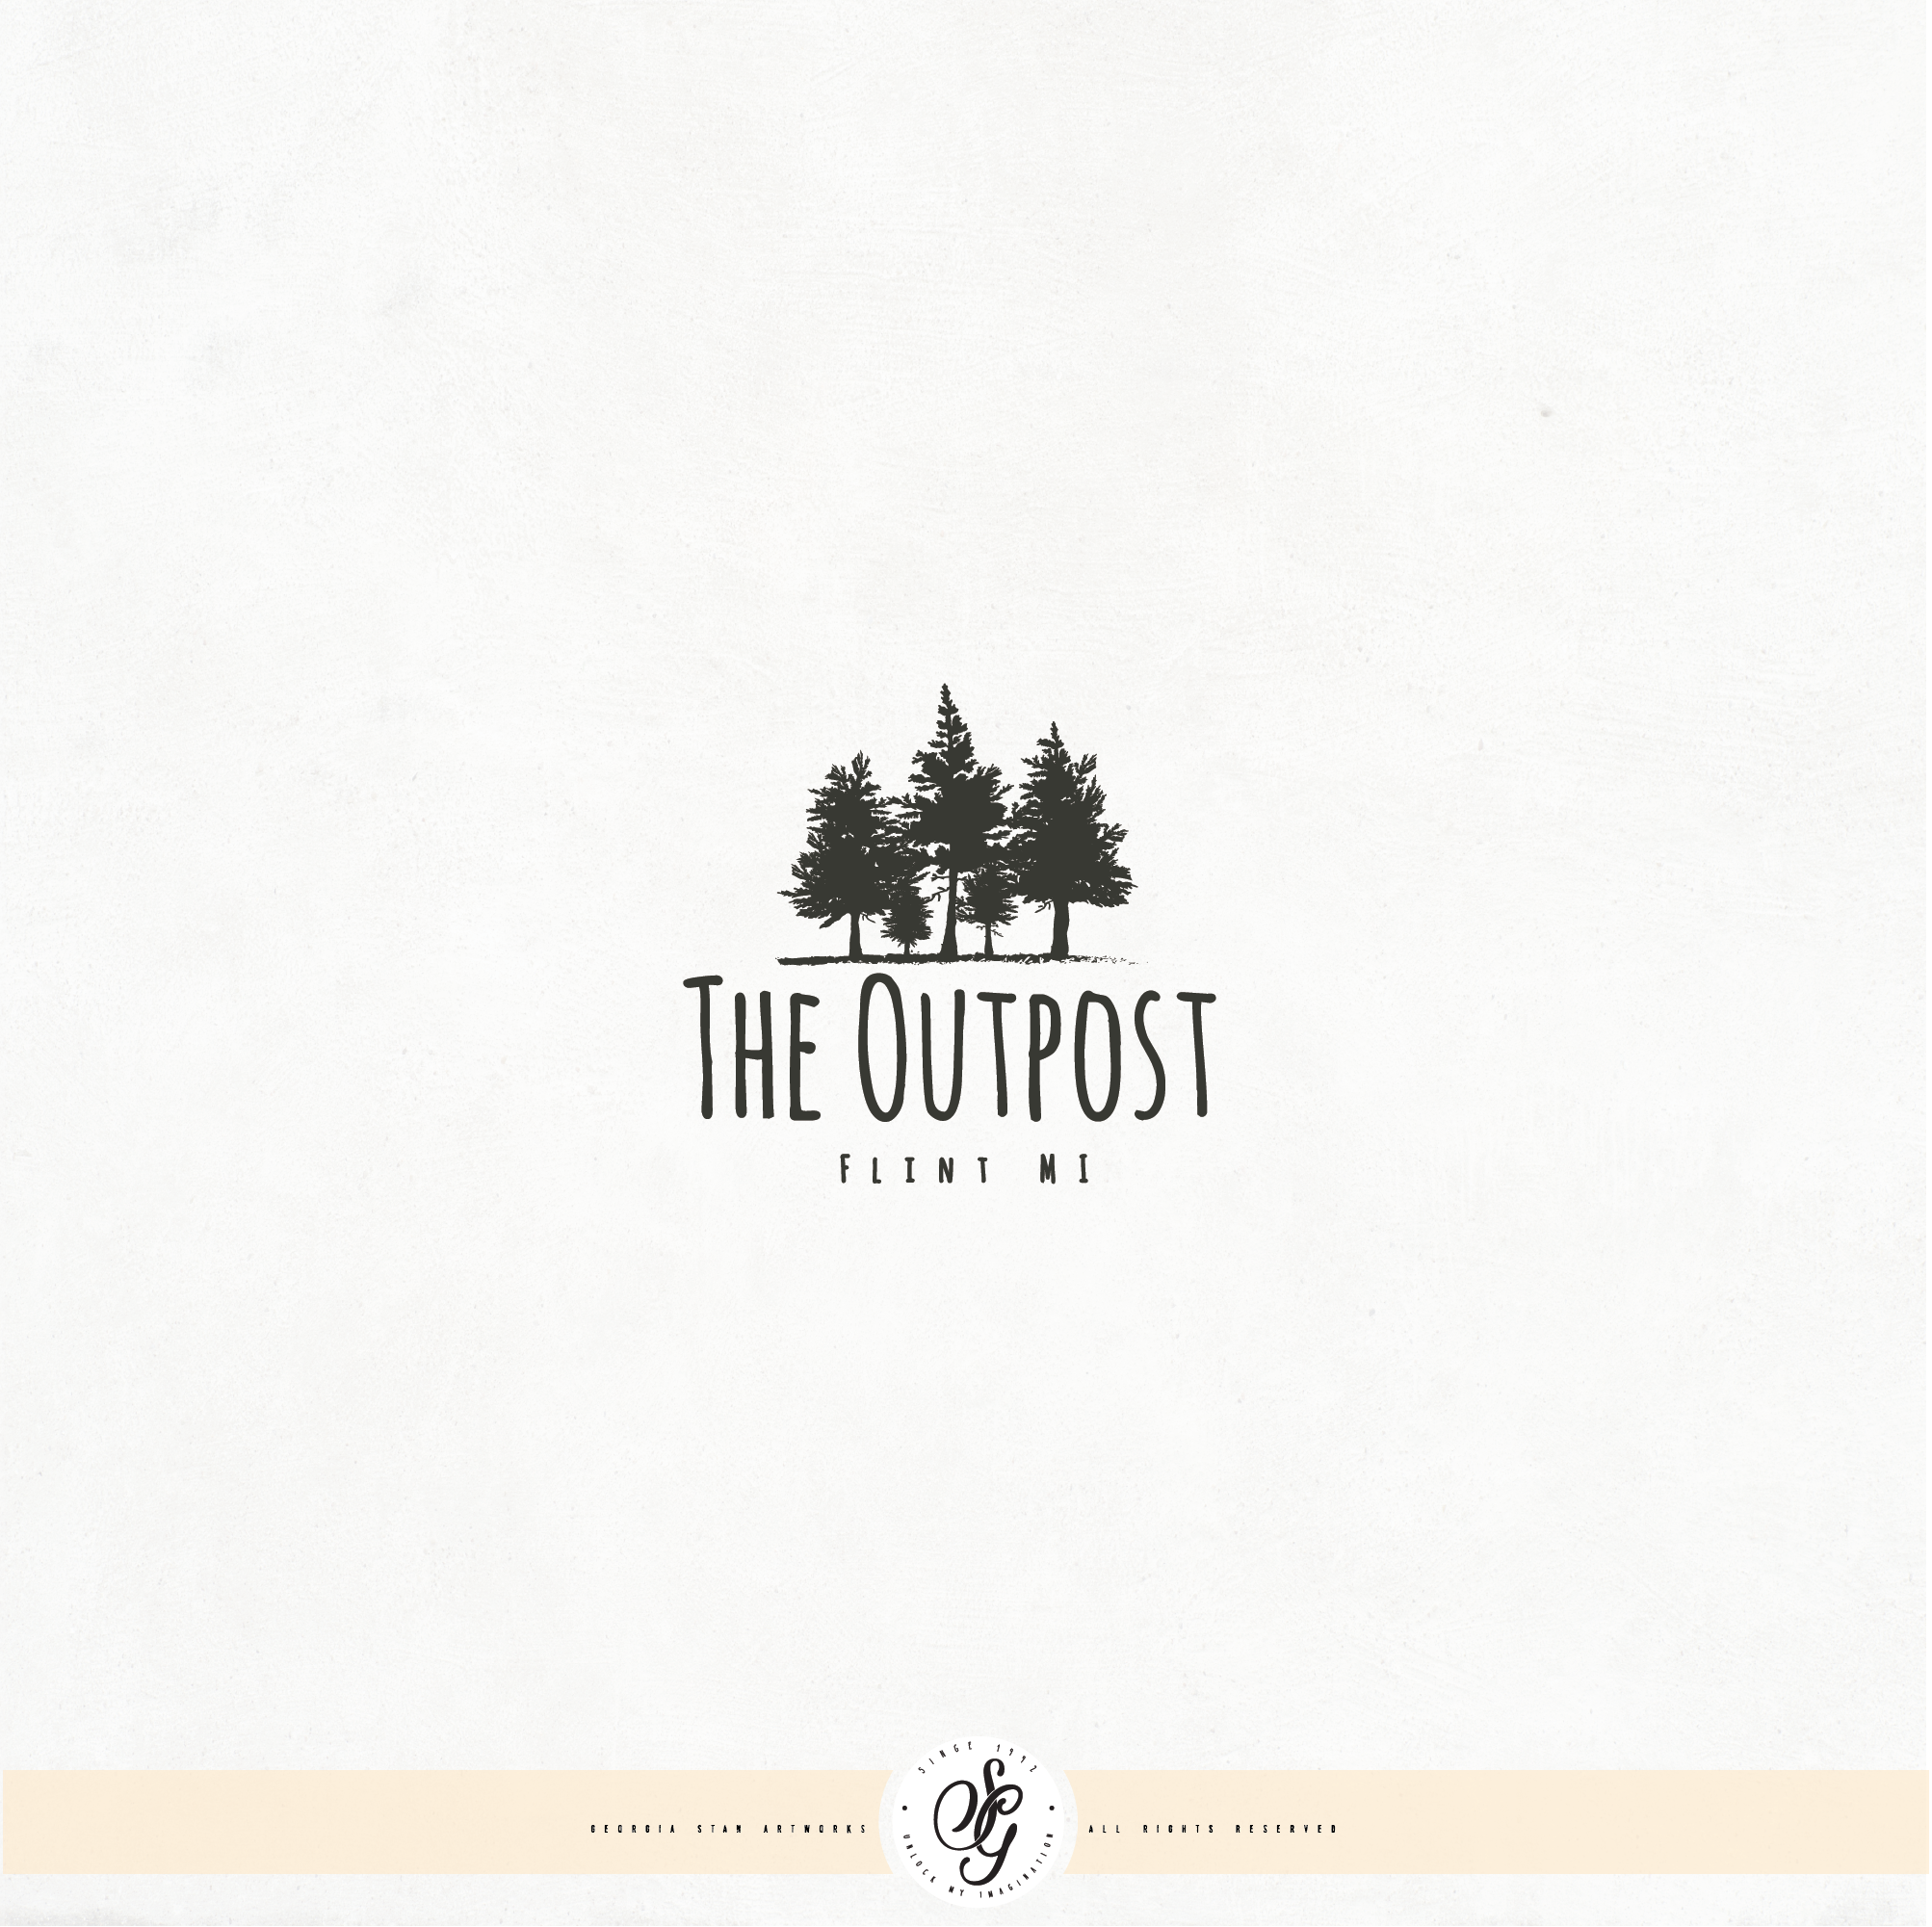 Create a rustic, woodsy, log cabin logo for The Outpost